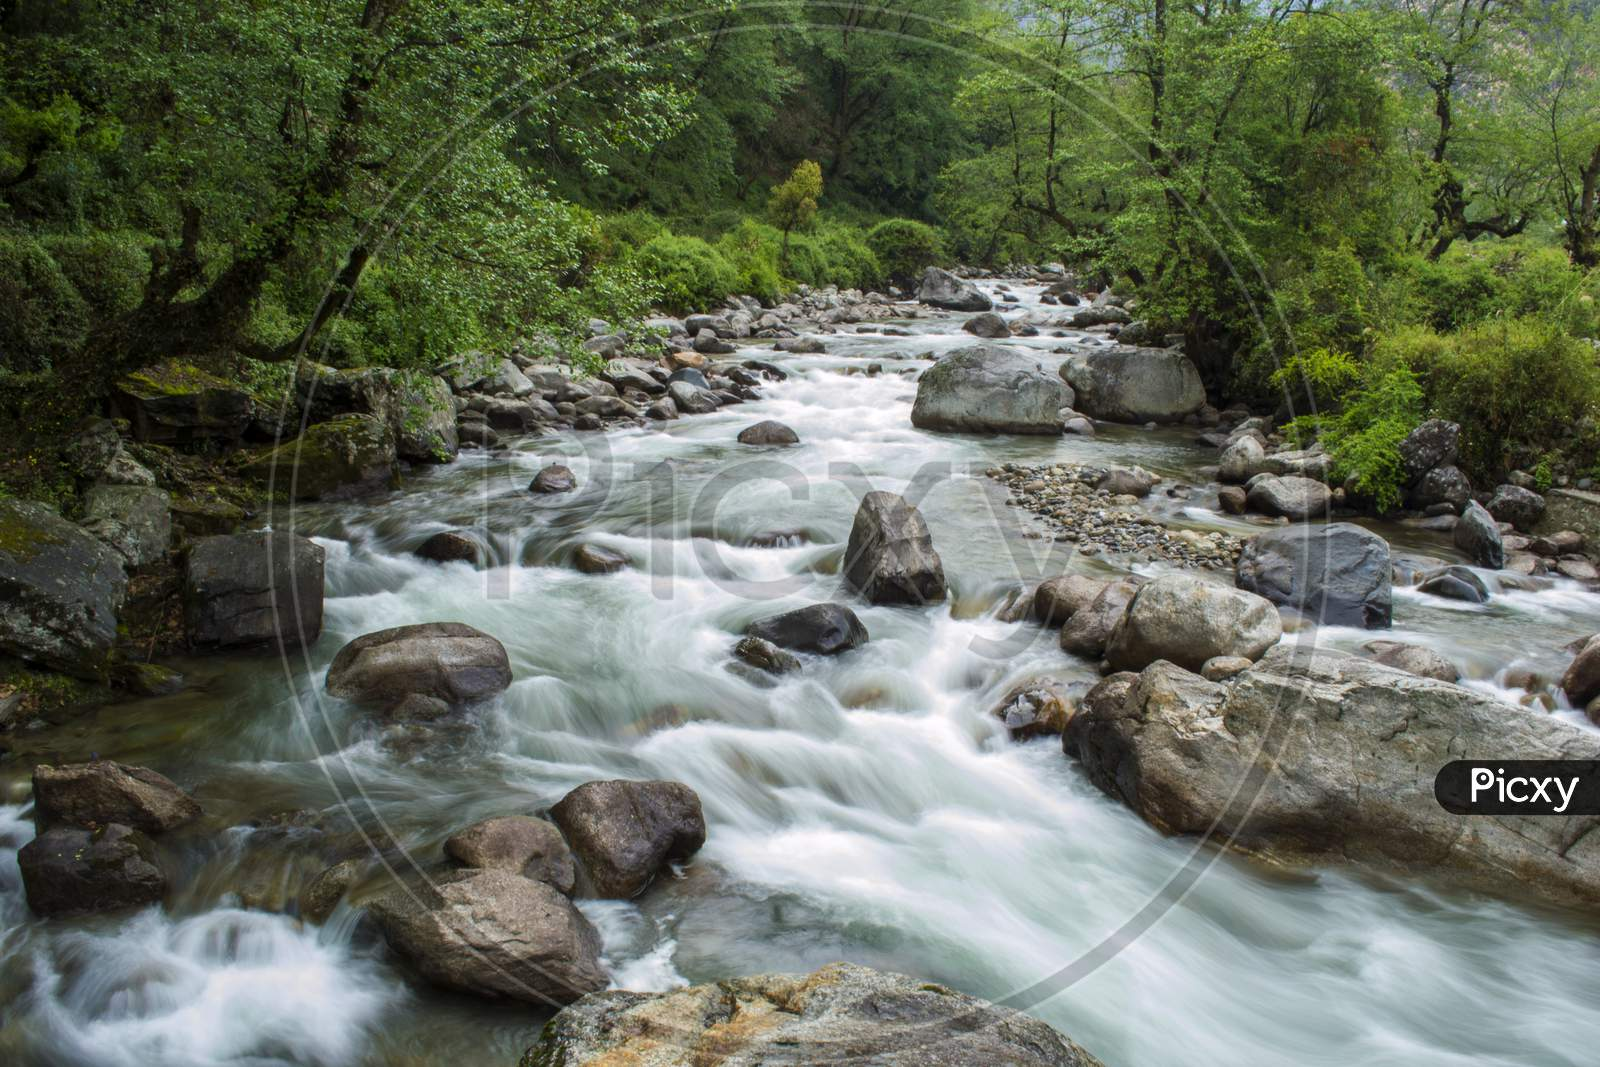 A Beautiful Mountain River Balkhila Flowing Through Rocks And Forest In A Small Village.